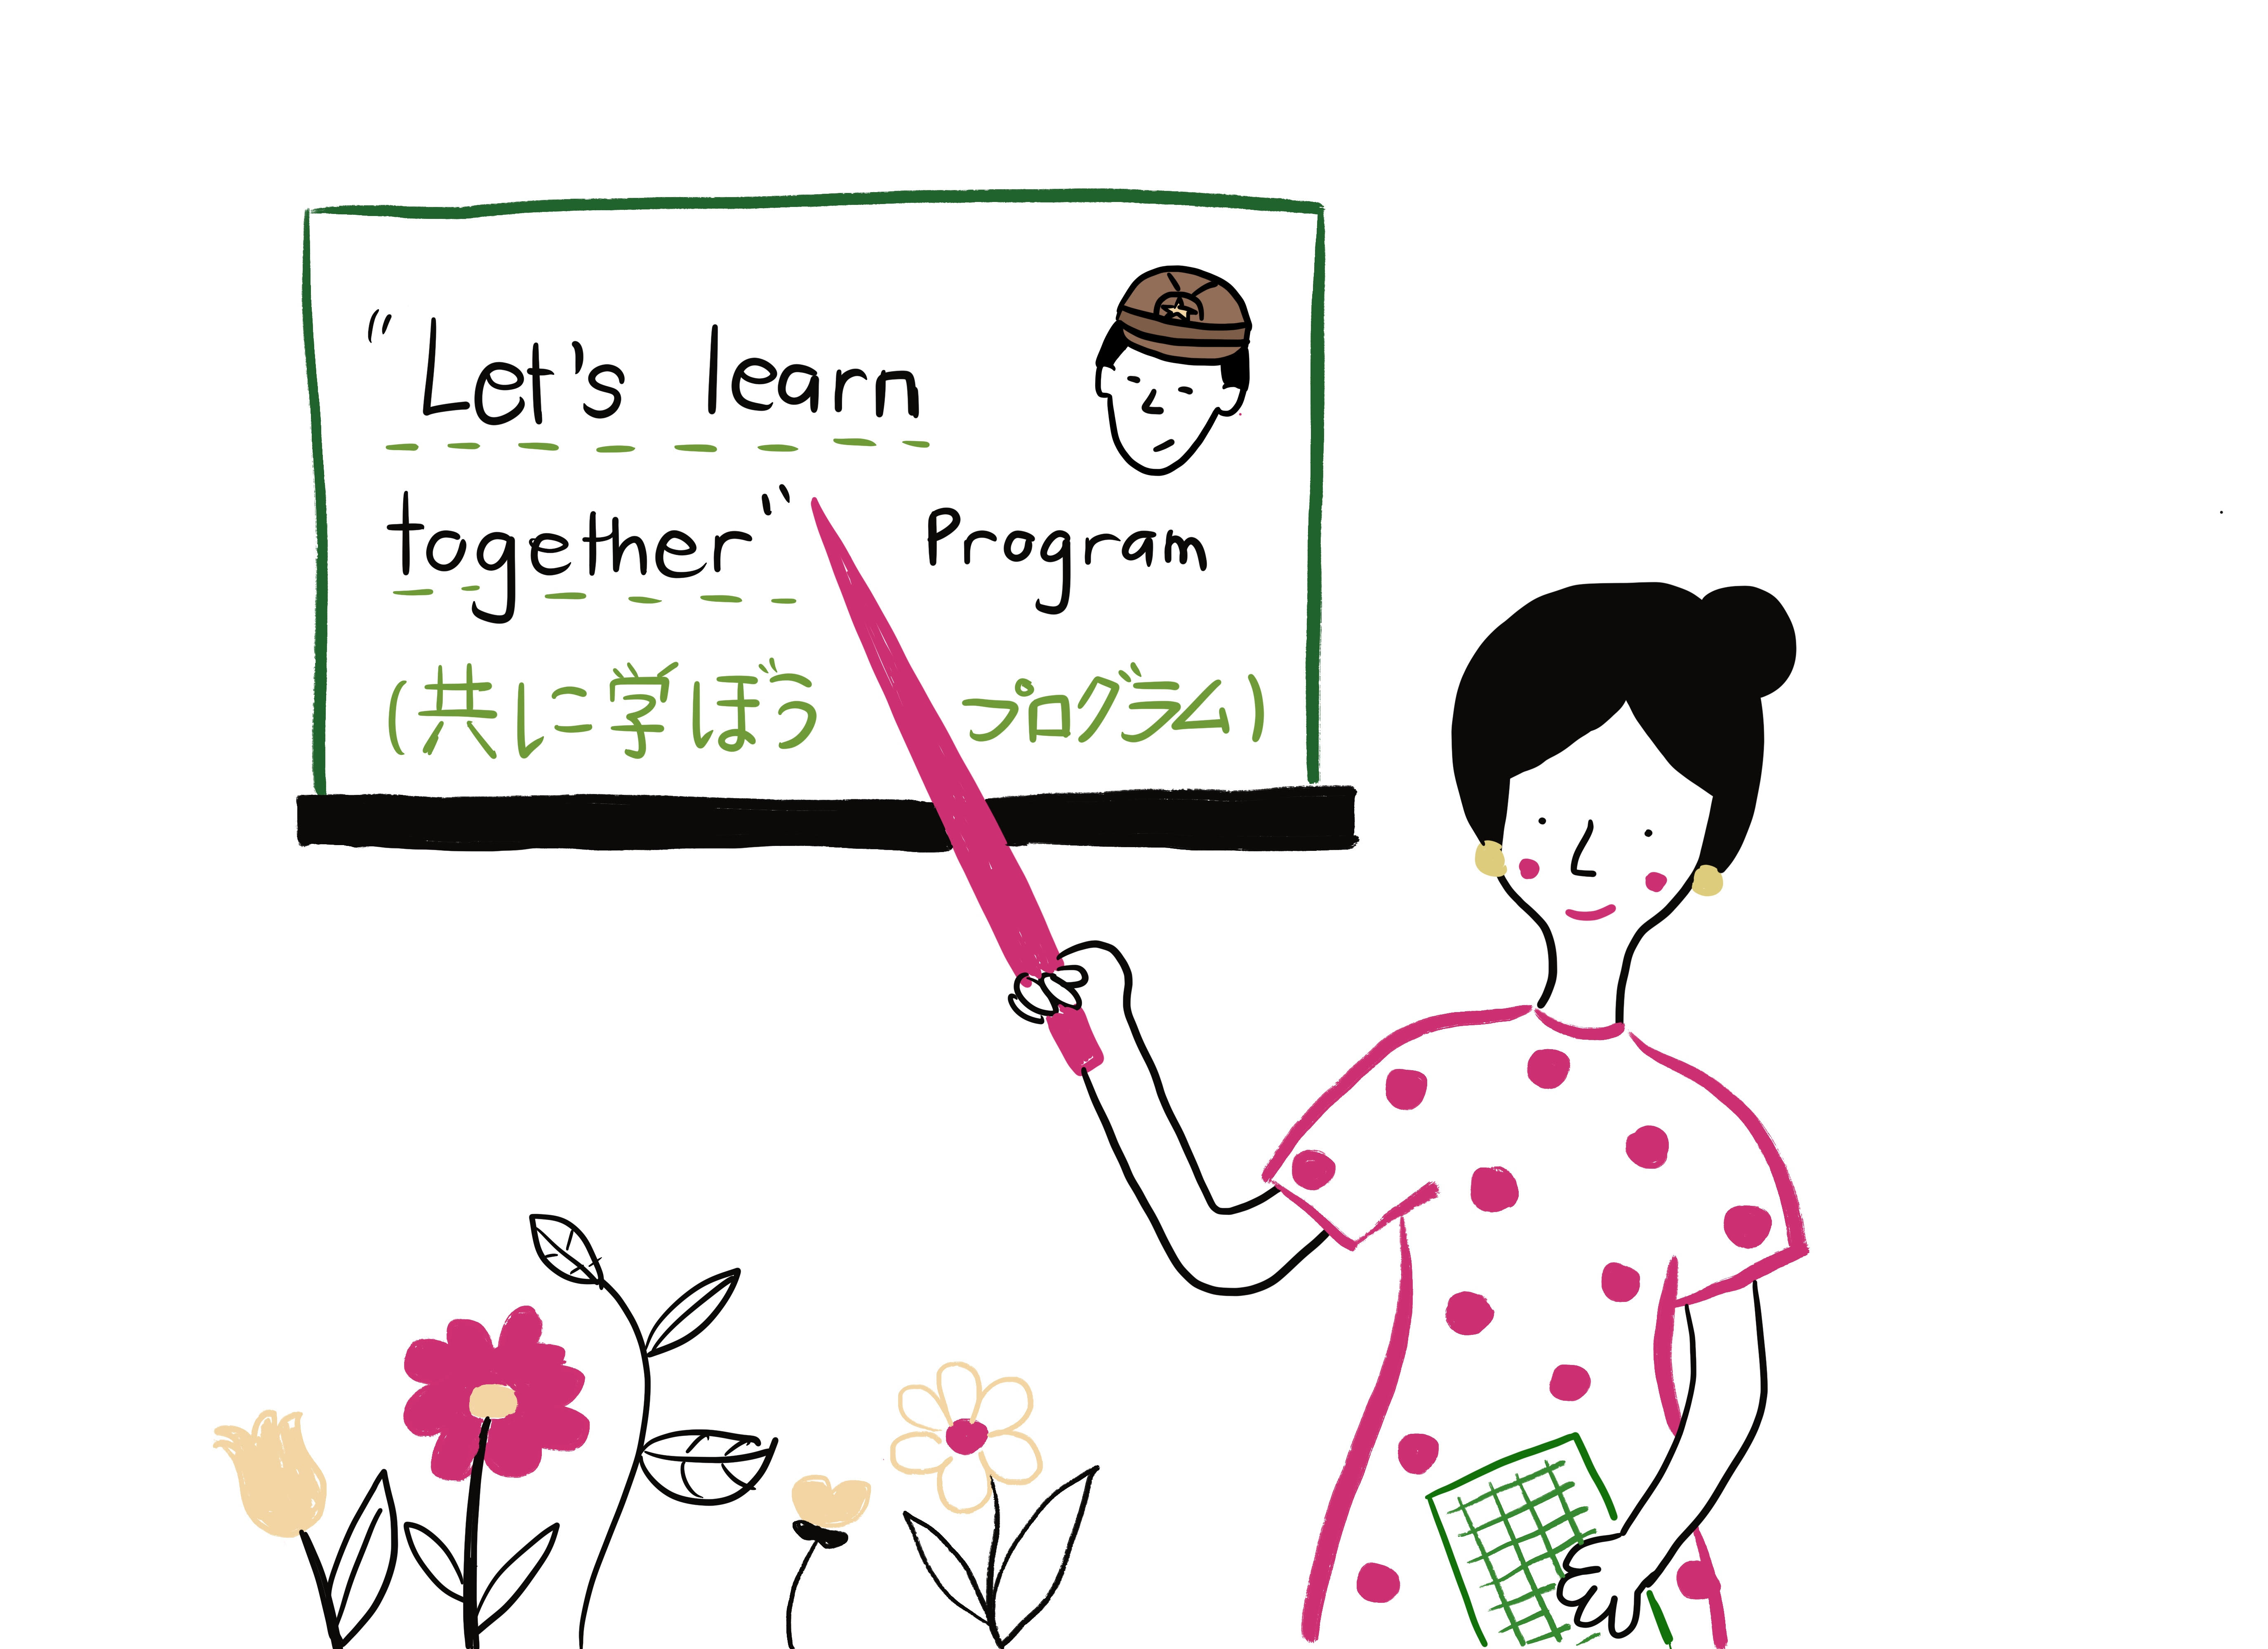 lets learn together program.jpg